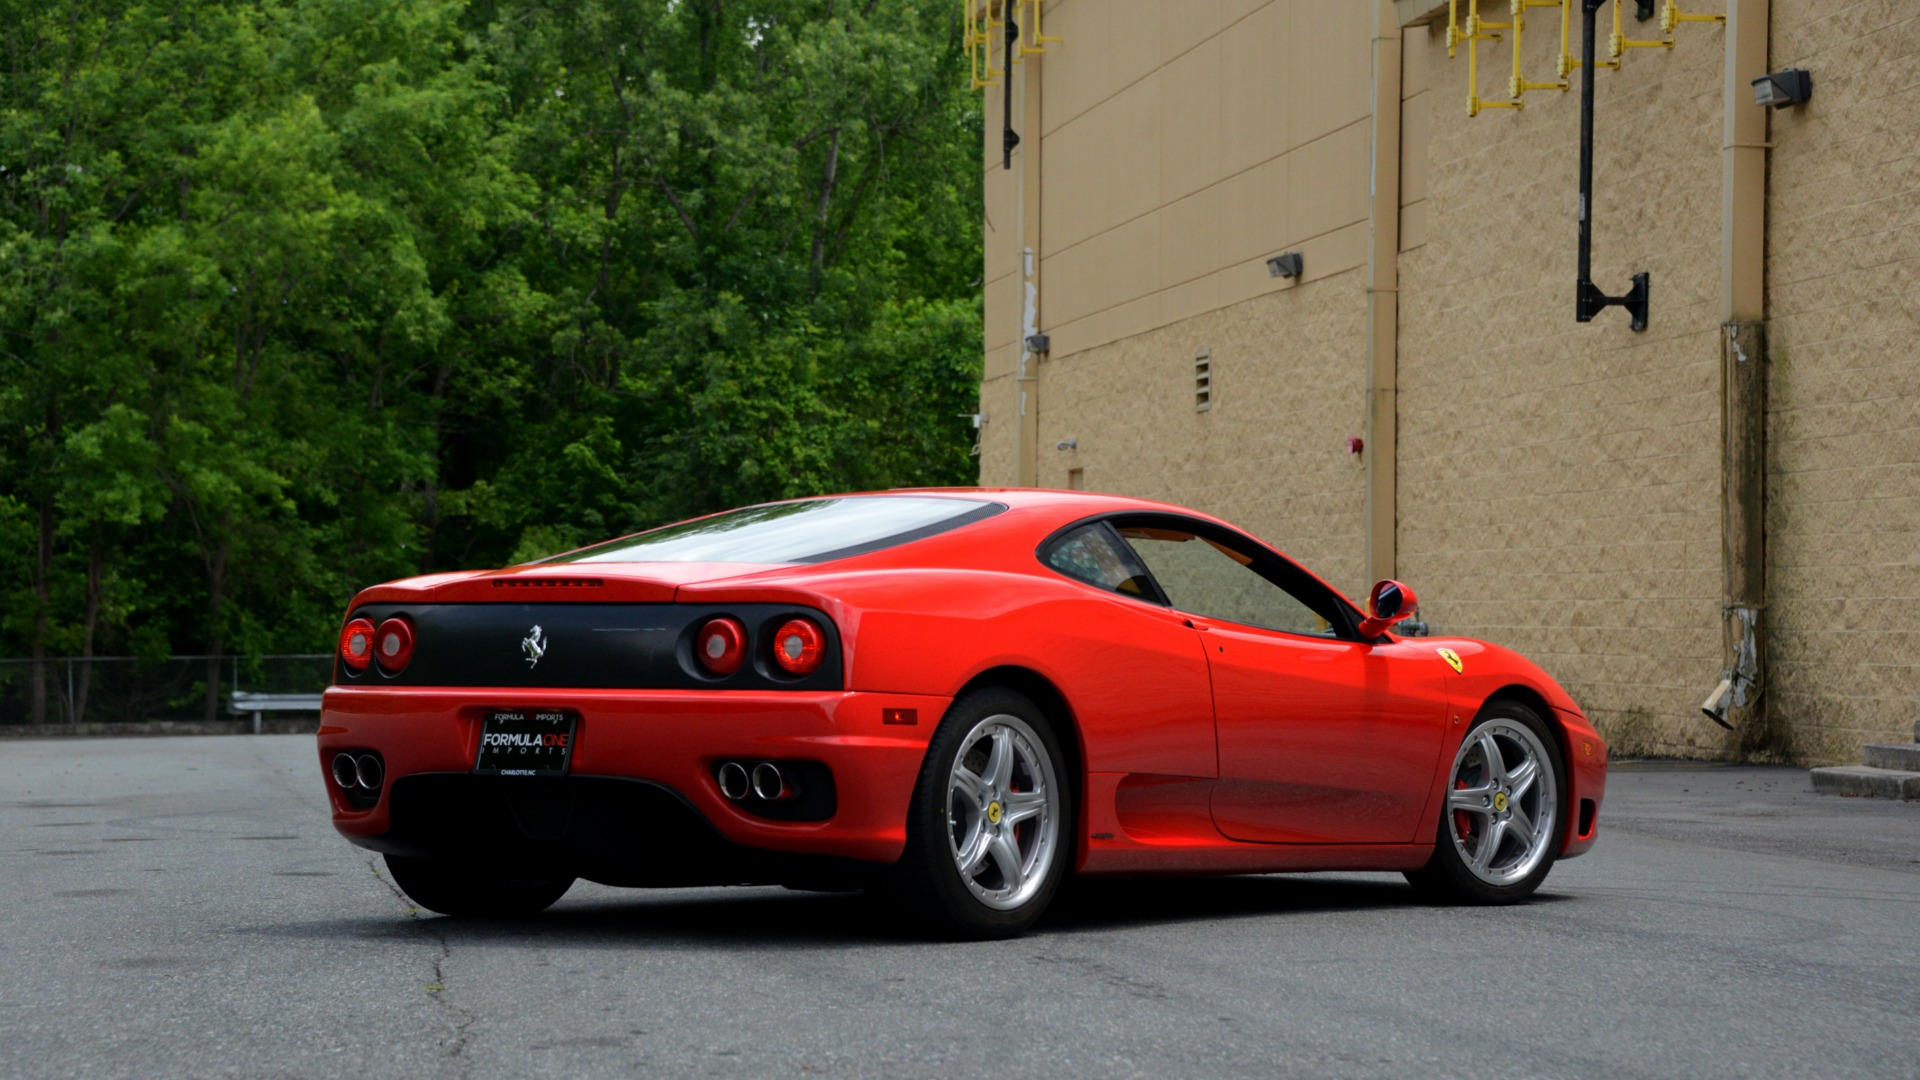 Used 2004 Ferrari 360 MODENA COUPE / GATED 6-SPD MANUAL / SUNROOF / LOW MILES for sale Sold at Formula Imports in Charlotte NC 28227 11